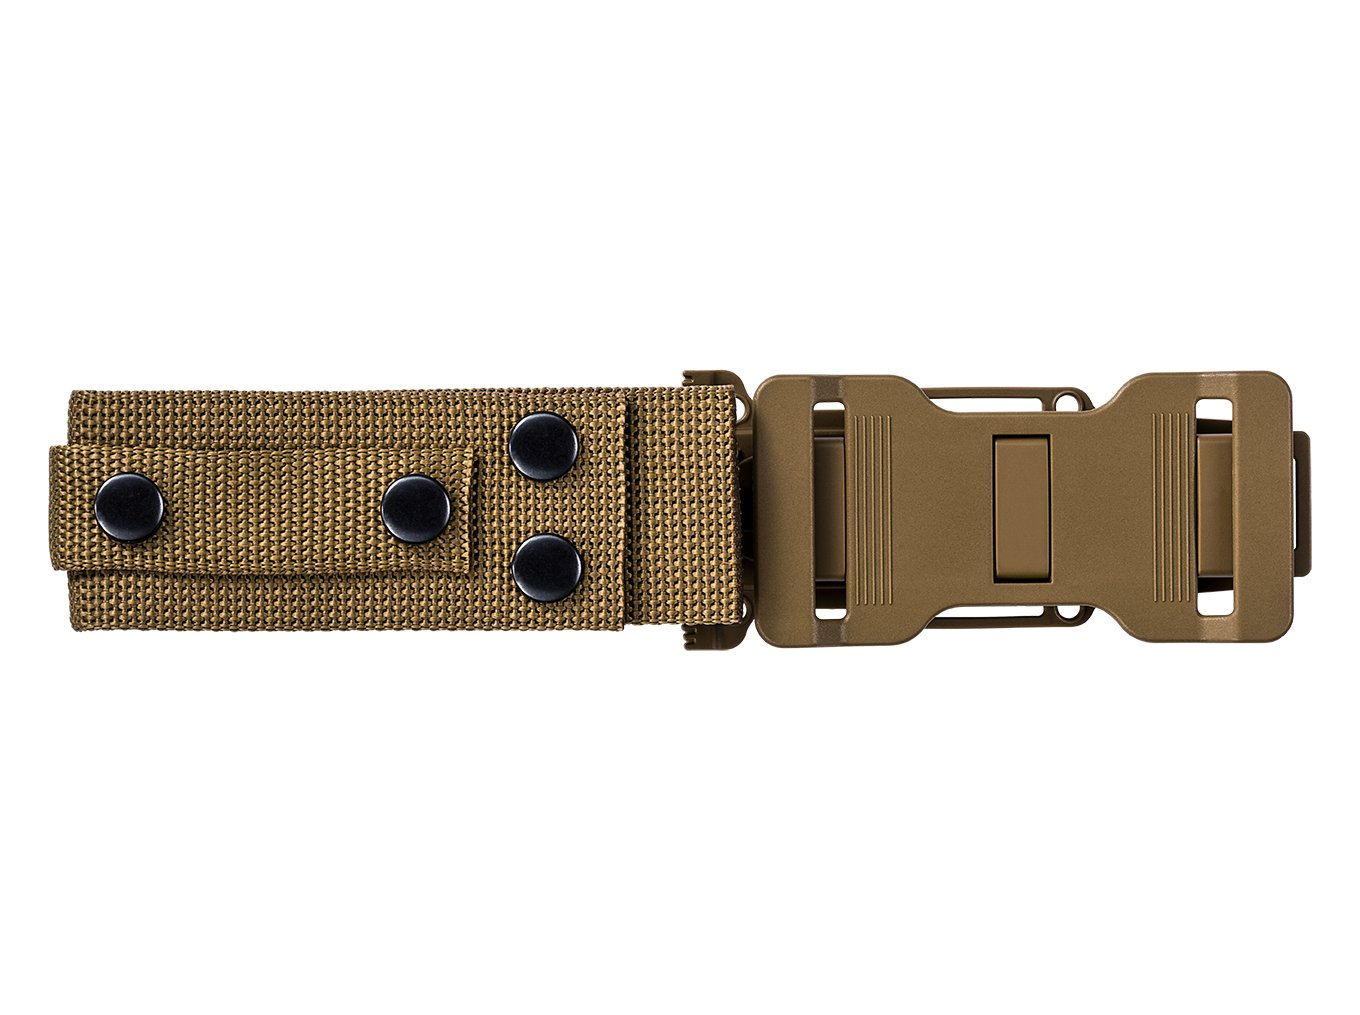 Gerber StrongArm 420 High Carbon Stainless Steel Fixed Blade Full Tang Knife with Molle Compatible Multi-Mount Sheath - Serrated Edge - Coyote Brown (30-001059) by Gerber (Image #5)